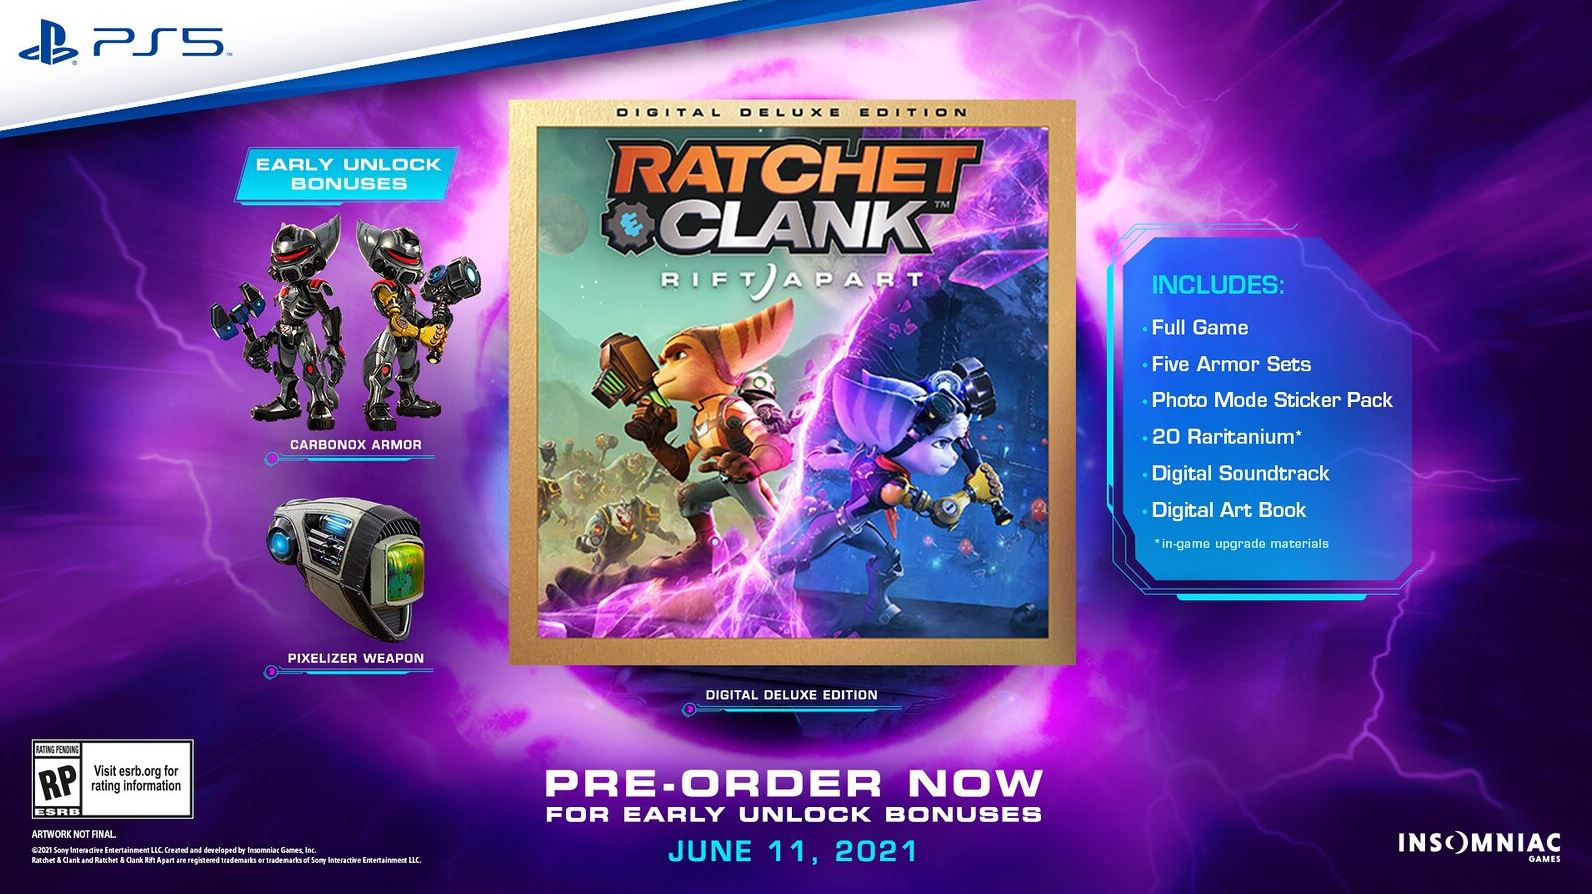 ratchet-and-clank-digital-deluxe-edition-and-pre-order-bonuses-detailed-box-art-also-revealed-2